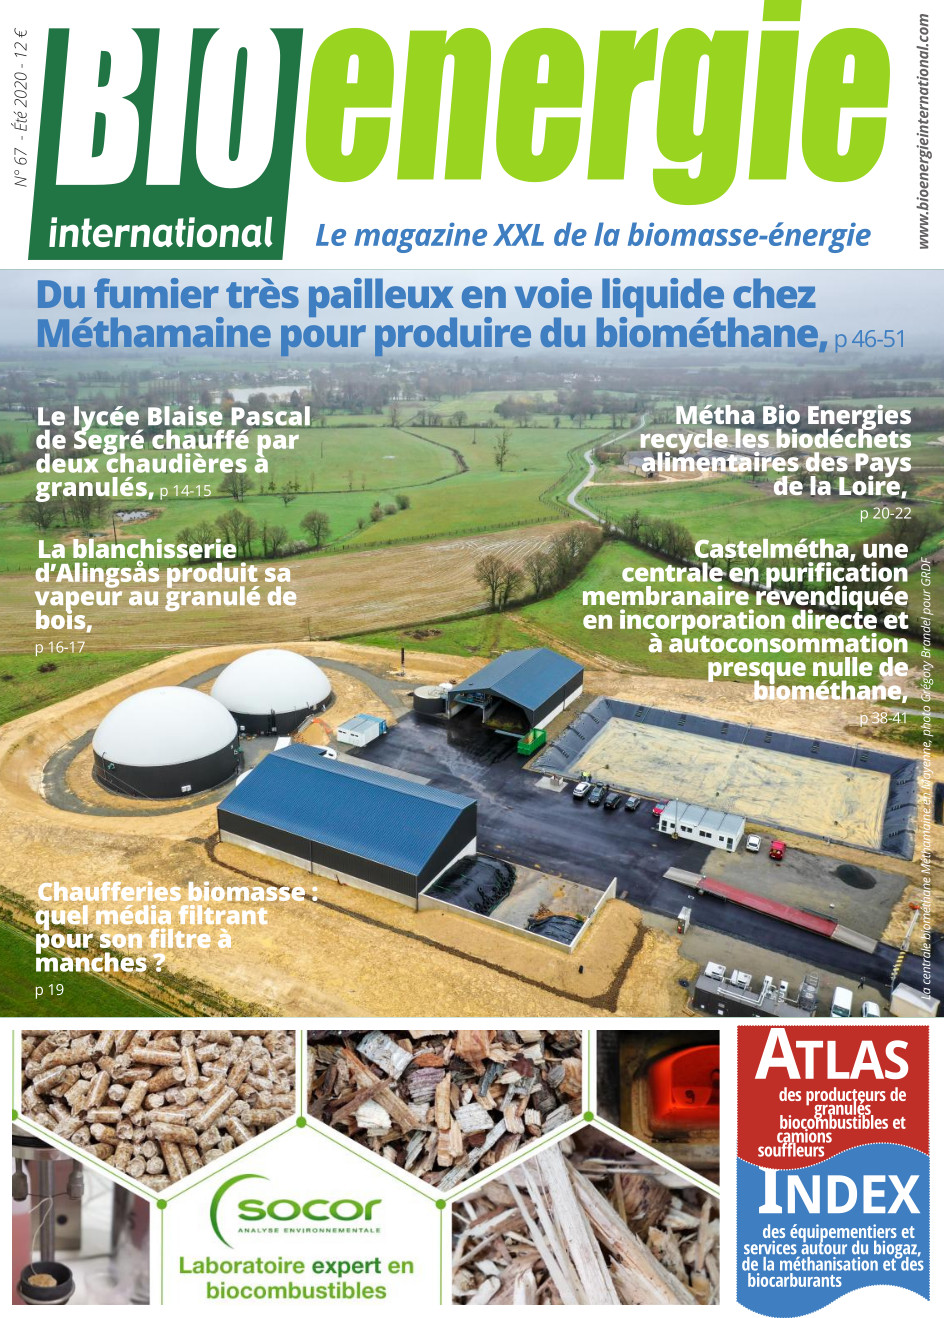 Bioénergie International n°67 – été 2020